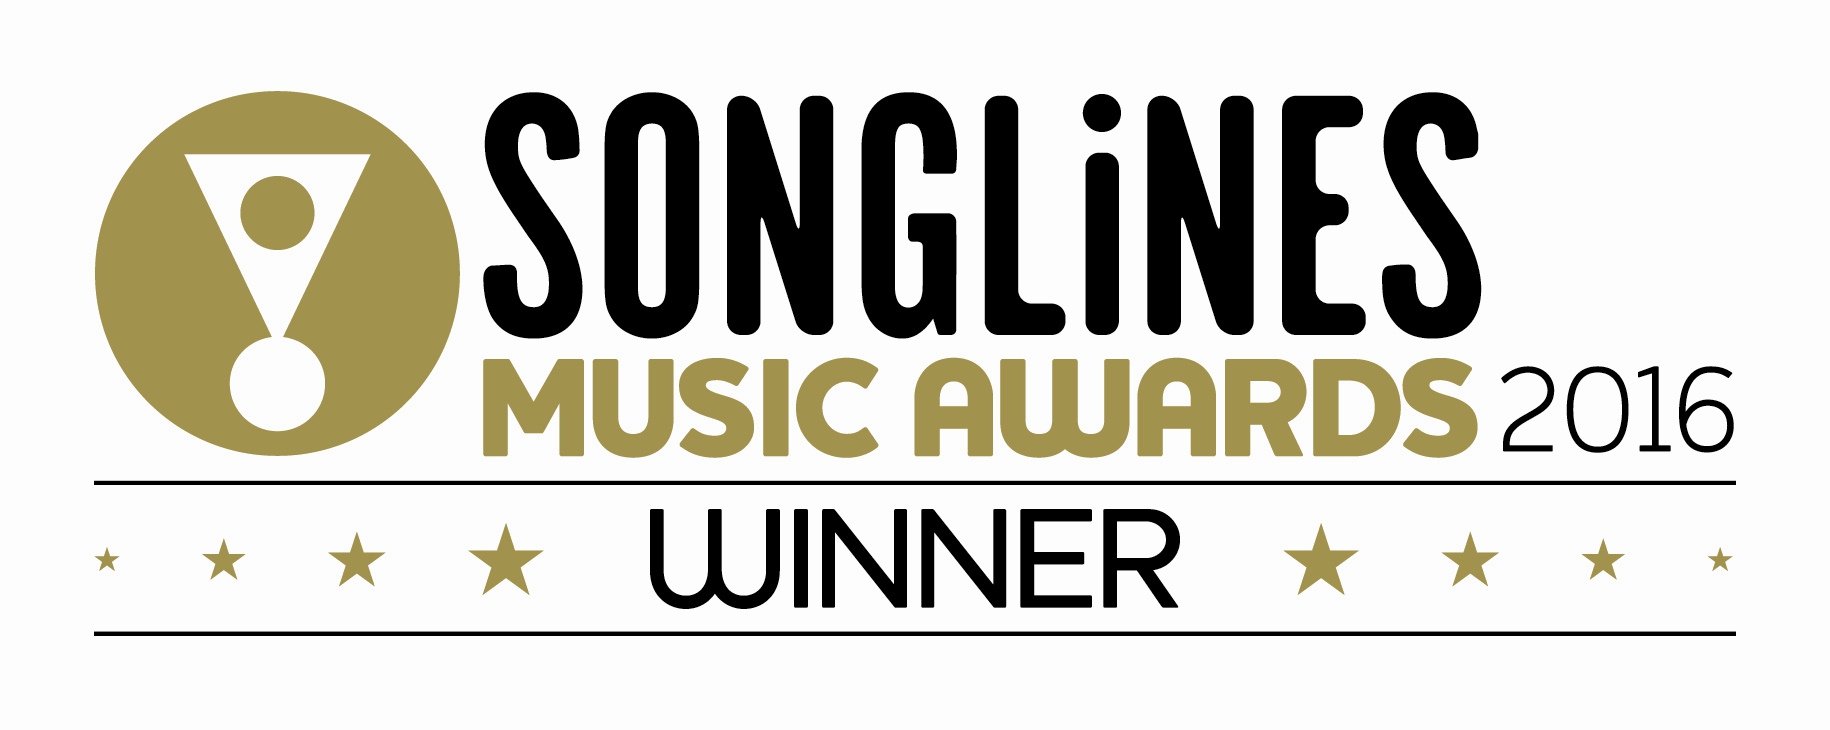 Songlines music awards banner